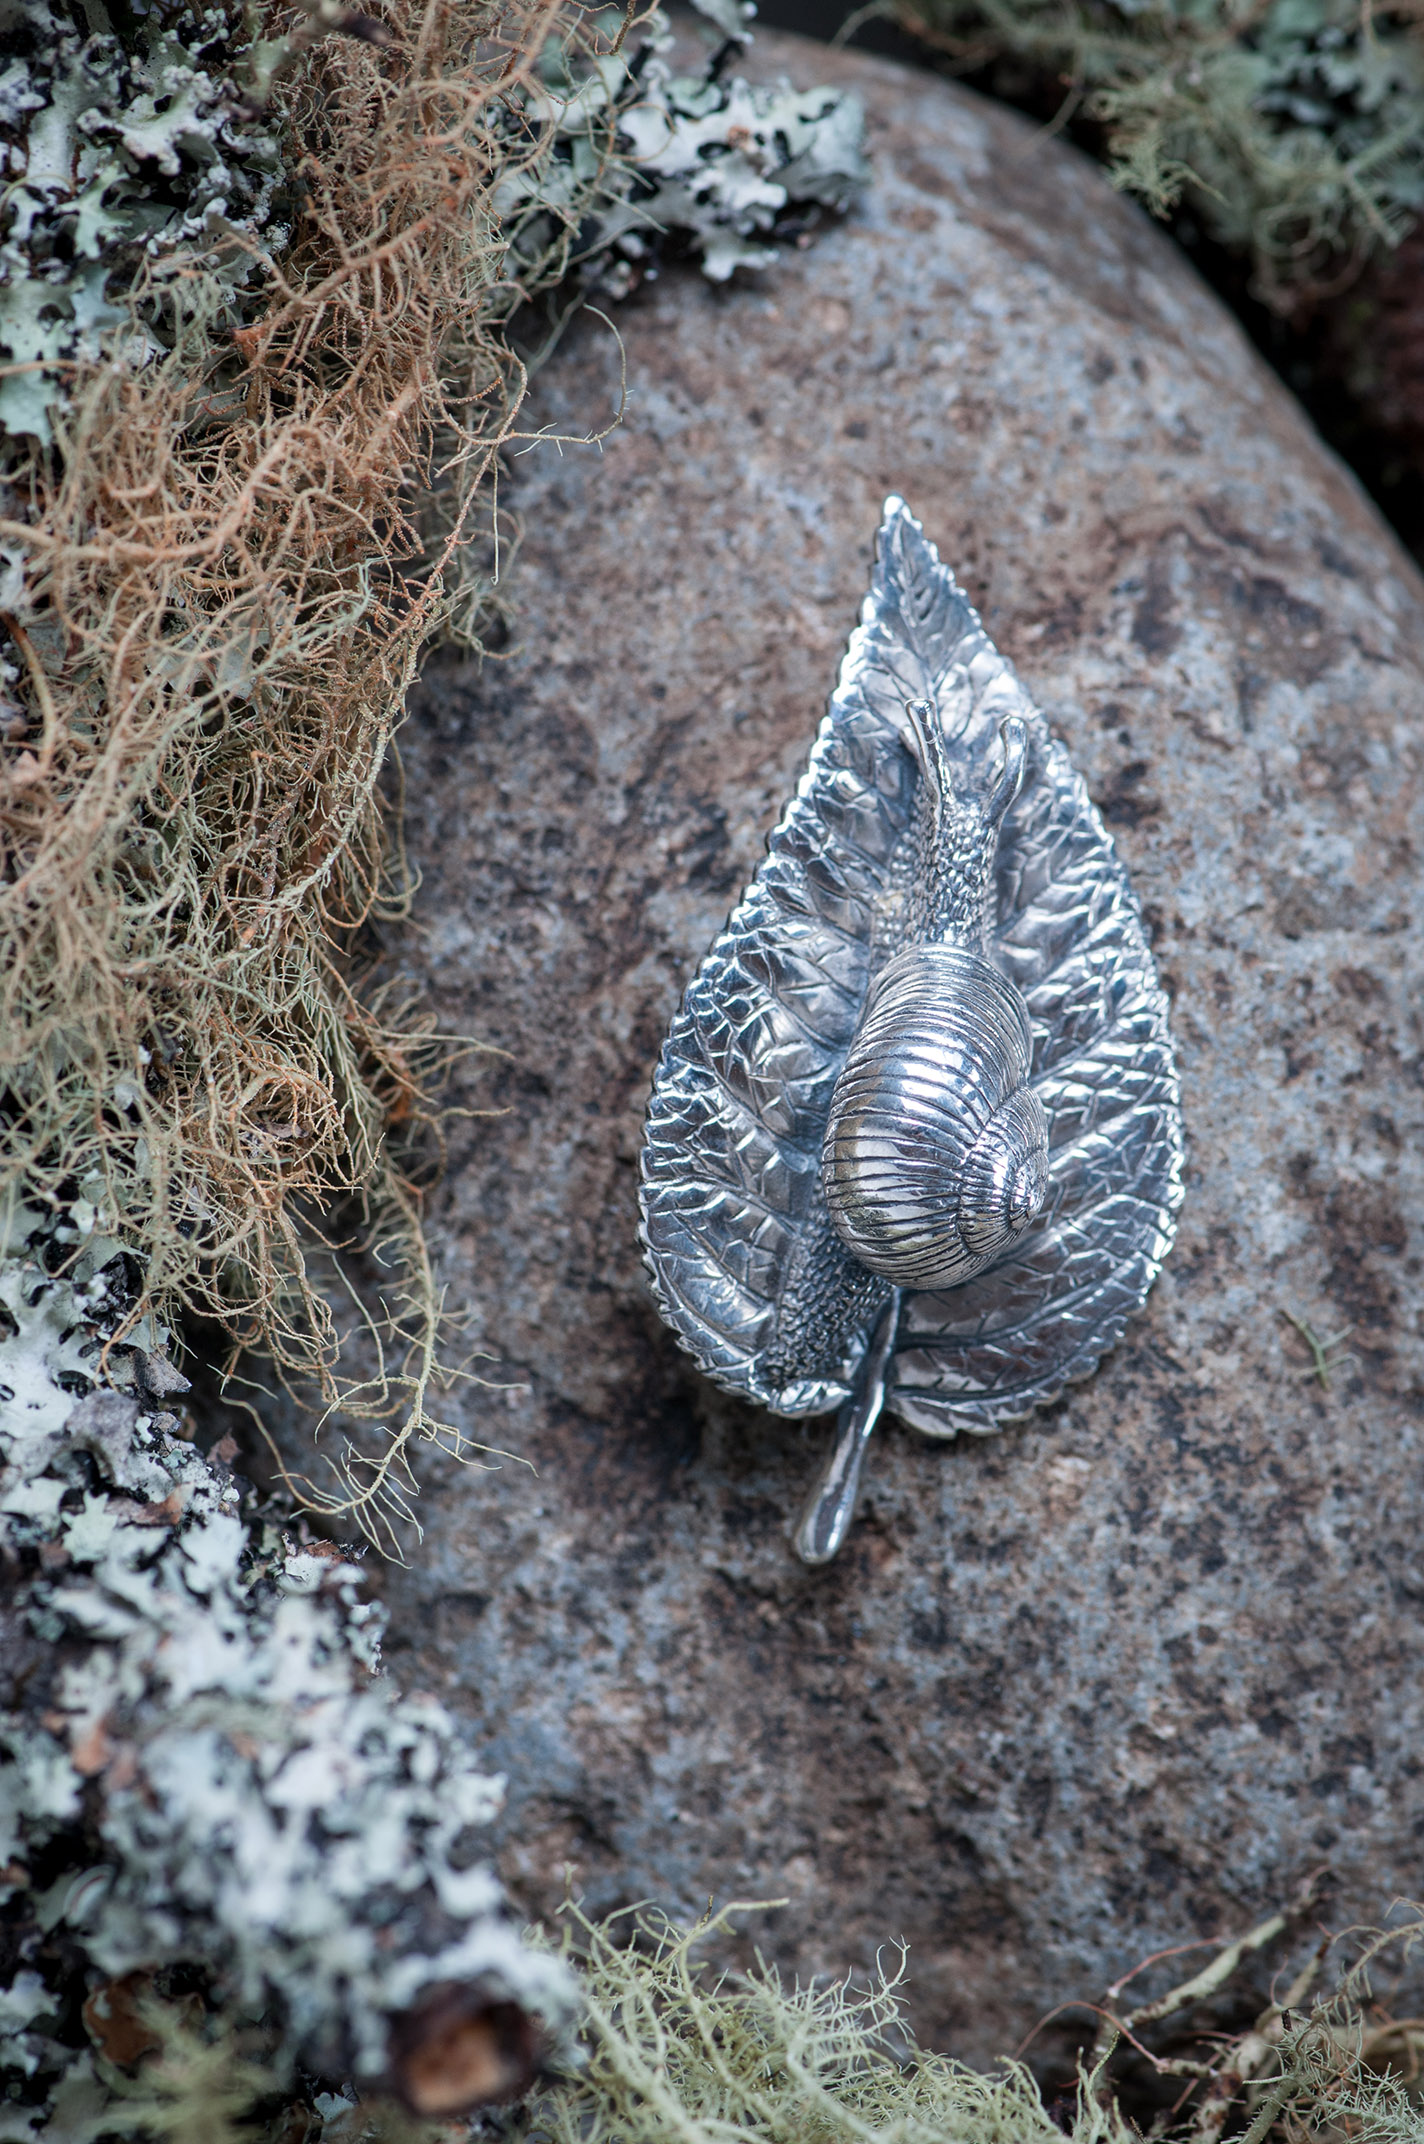 Silver snail-on-leaf brooch Product photography Anais Chaine professional Auckland photographer for Auckland museum www.anaischaine.com